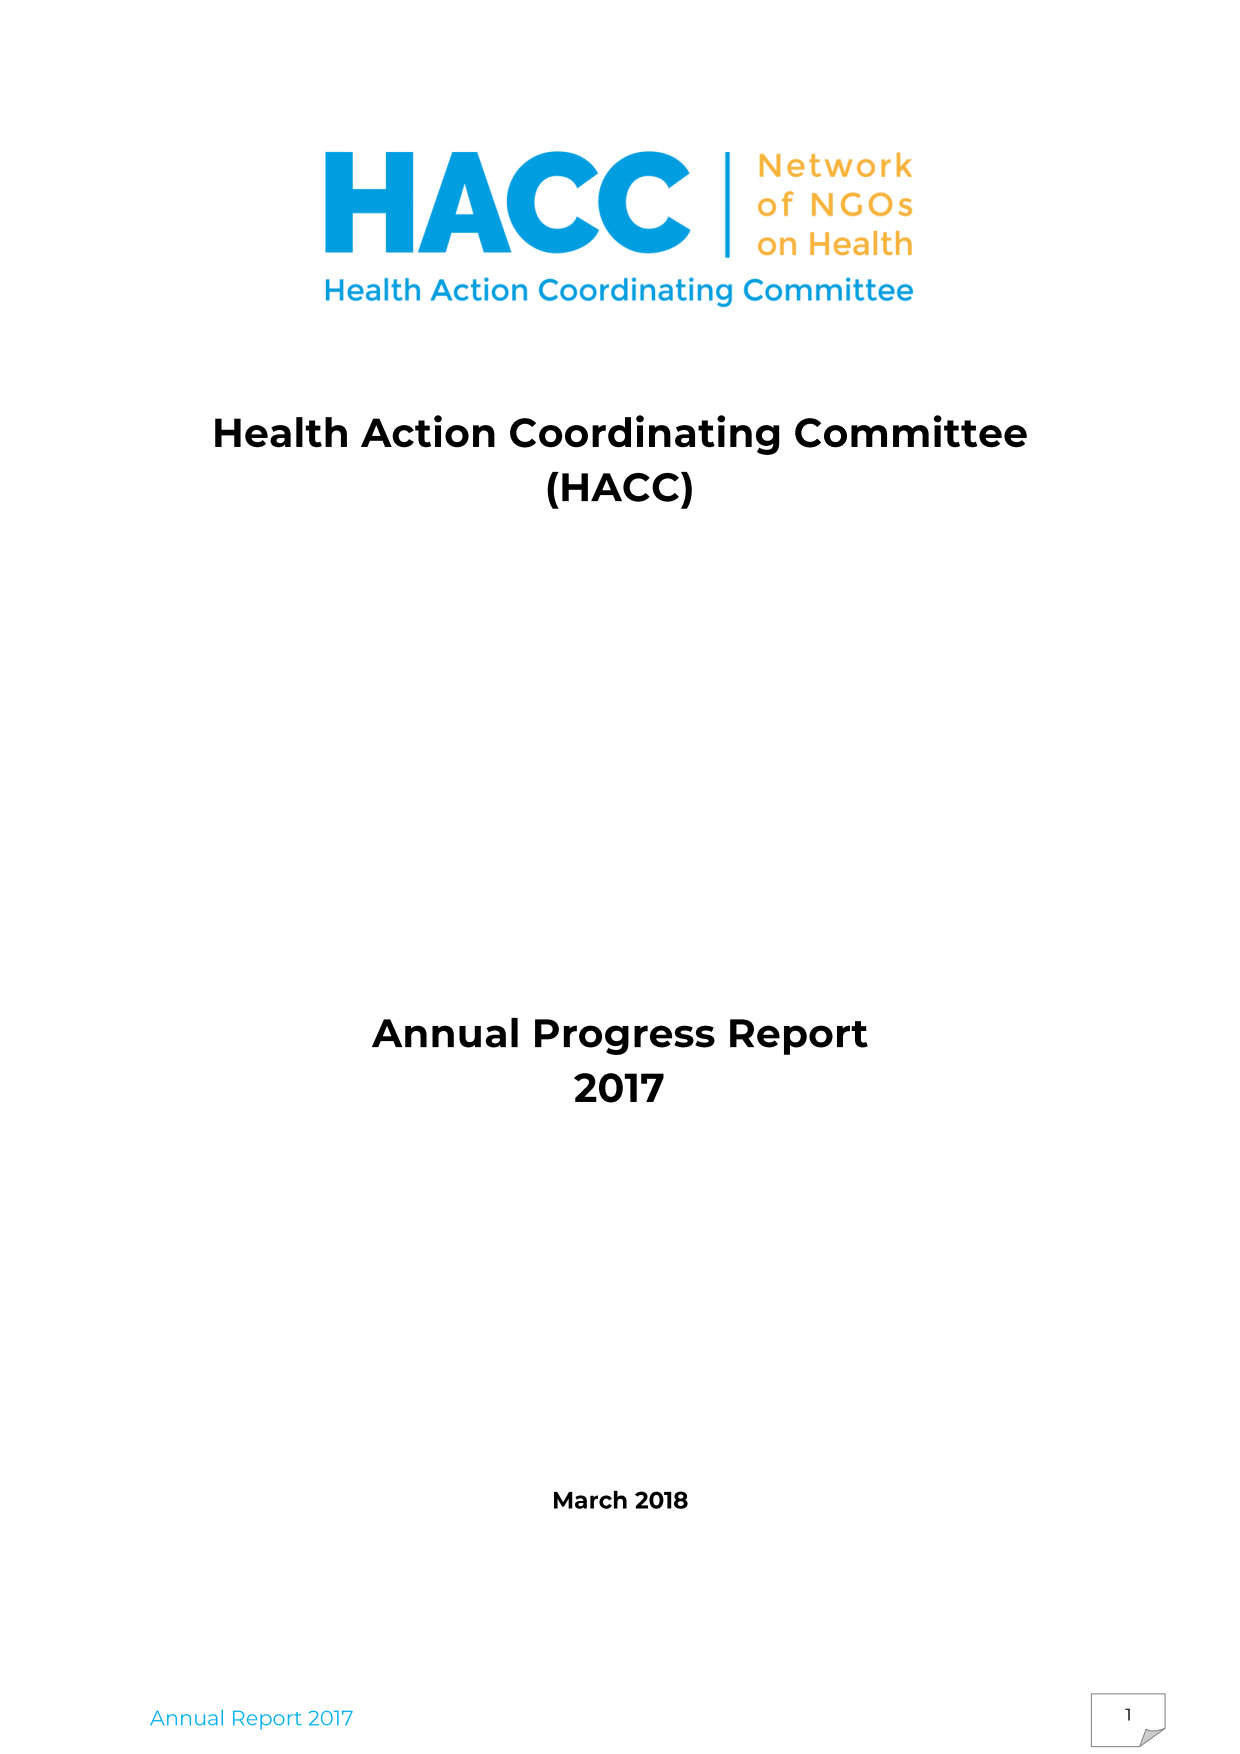 HACC Annual Report 2017